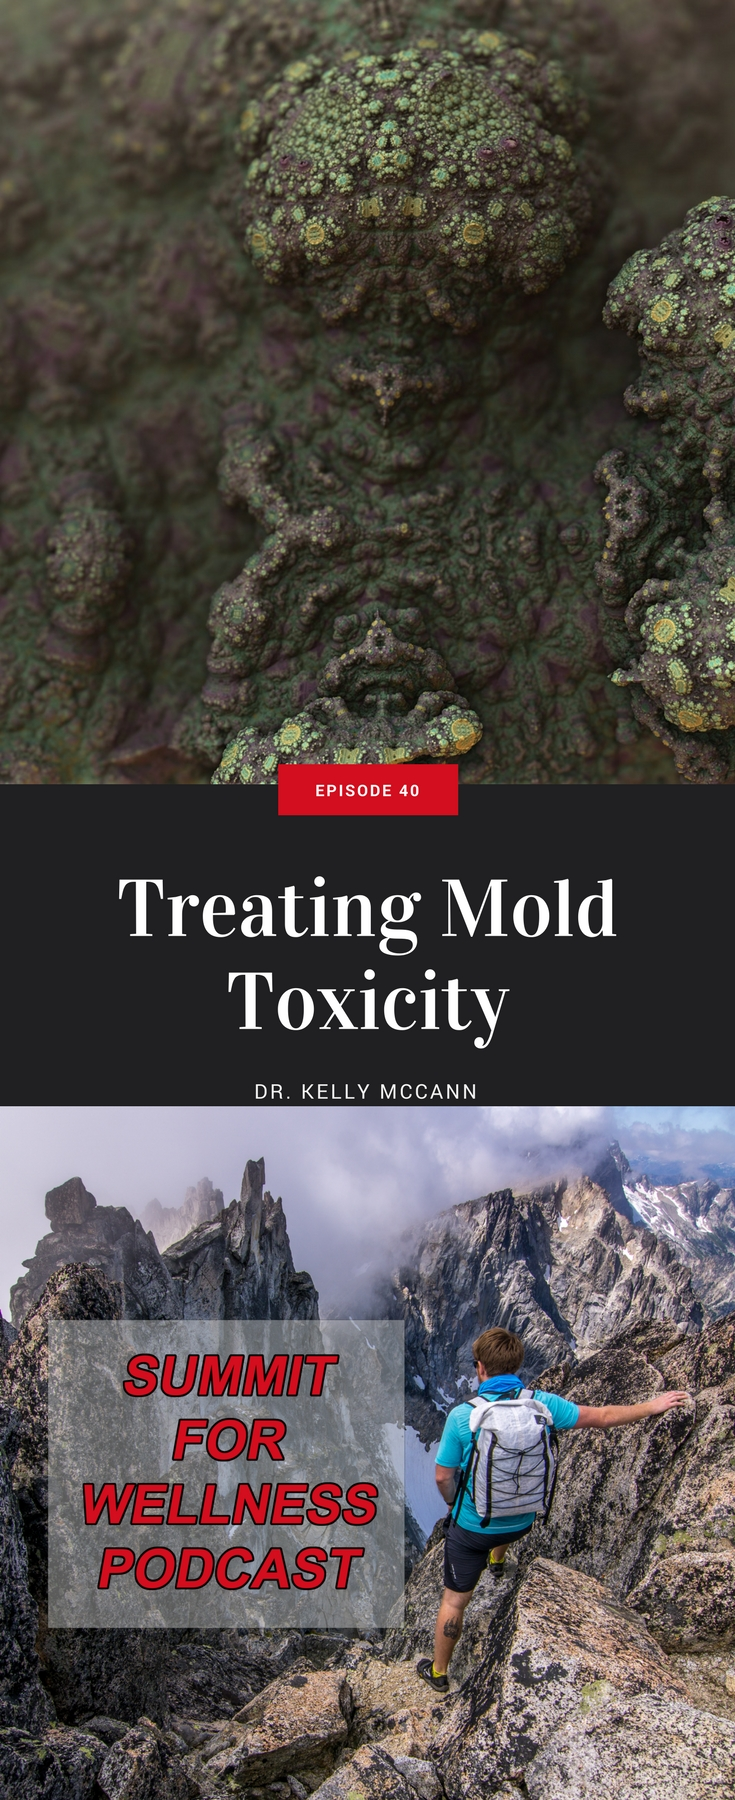 Dr. Kelly McCann discusses ways to treat toxic mold exposure and how to remove black mold from your house.